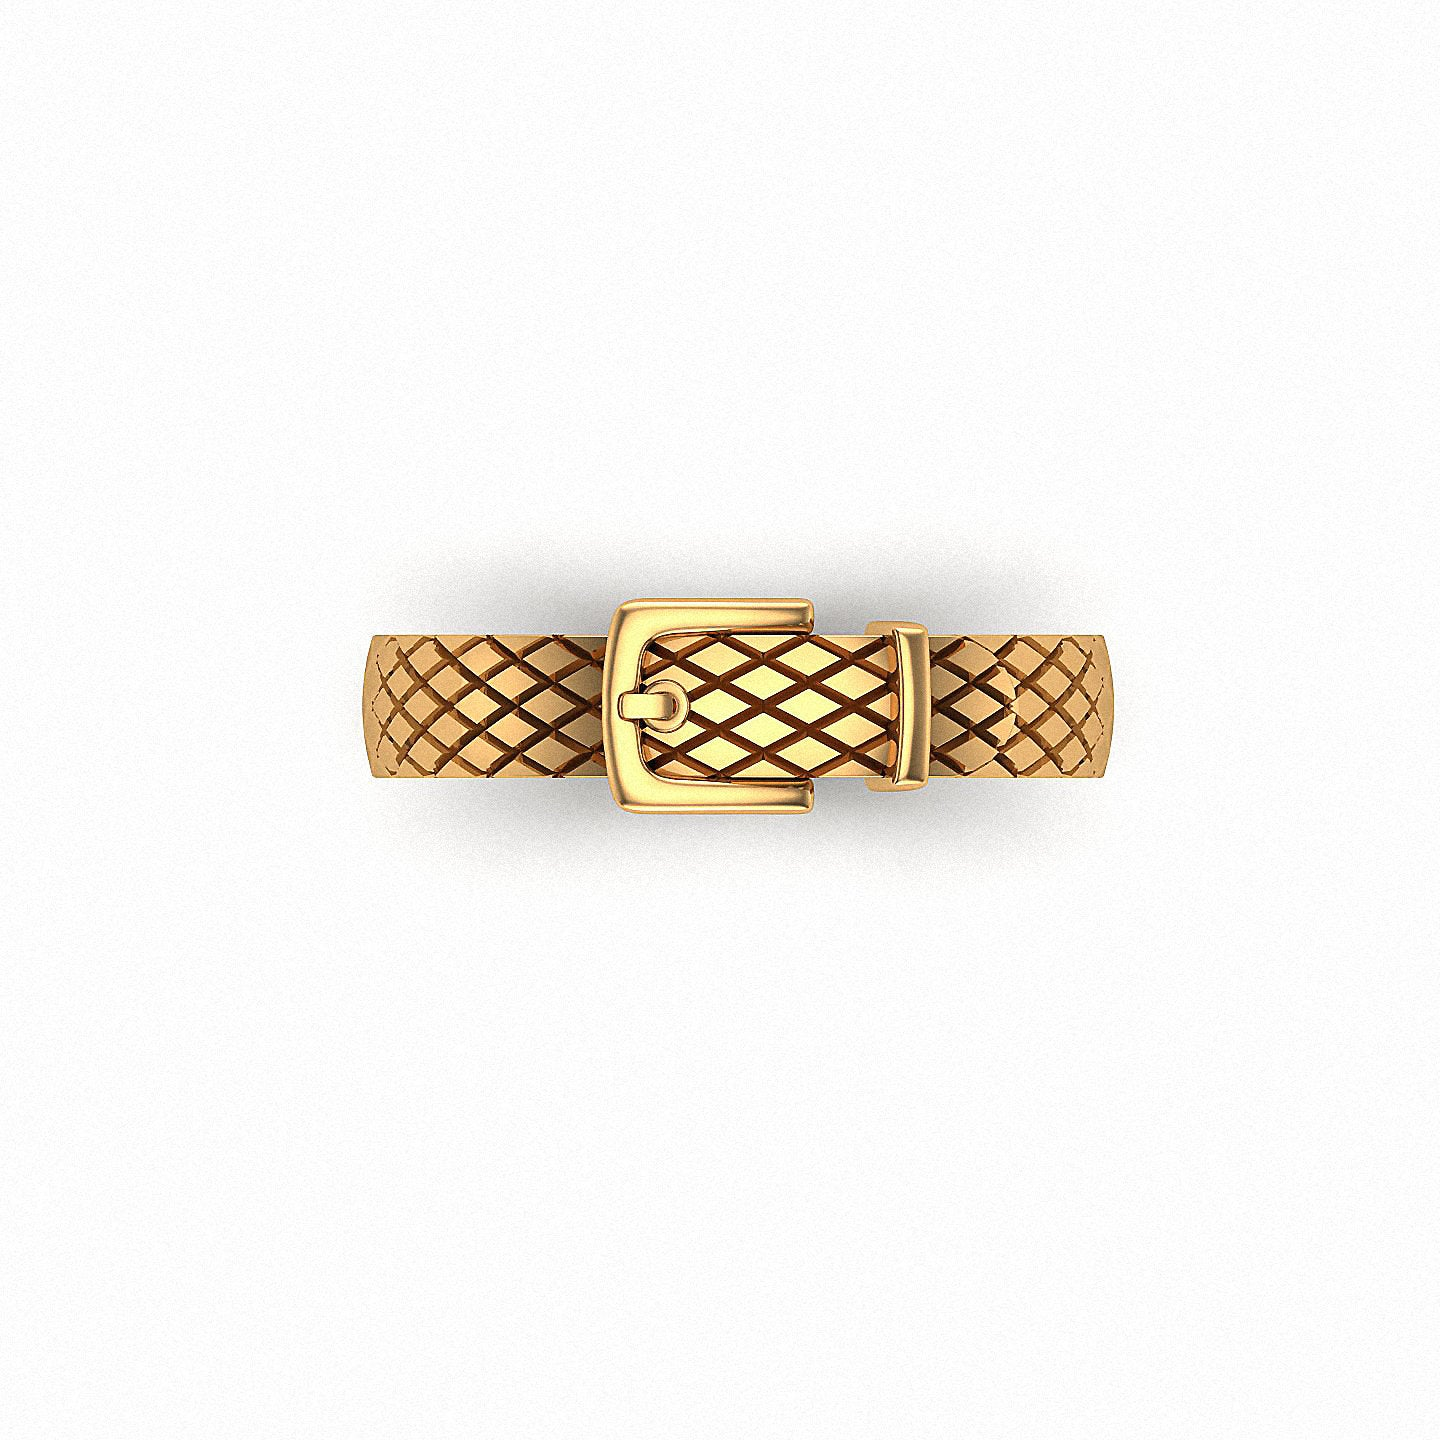 Handmade Jewelry, 14K Solid Gold Ring, Pattern Belt Buckle Stacking Stackable Minimalist R157